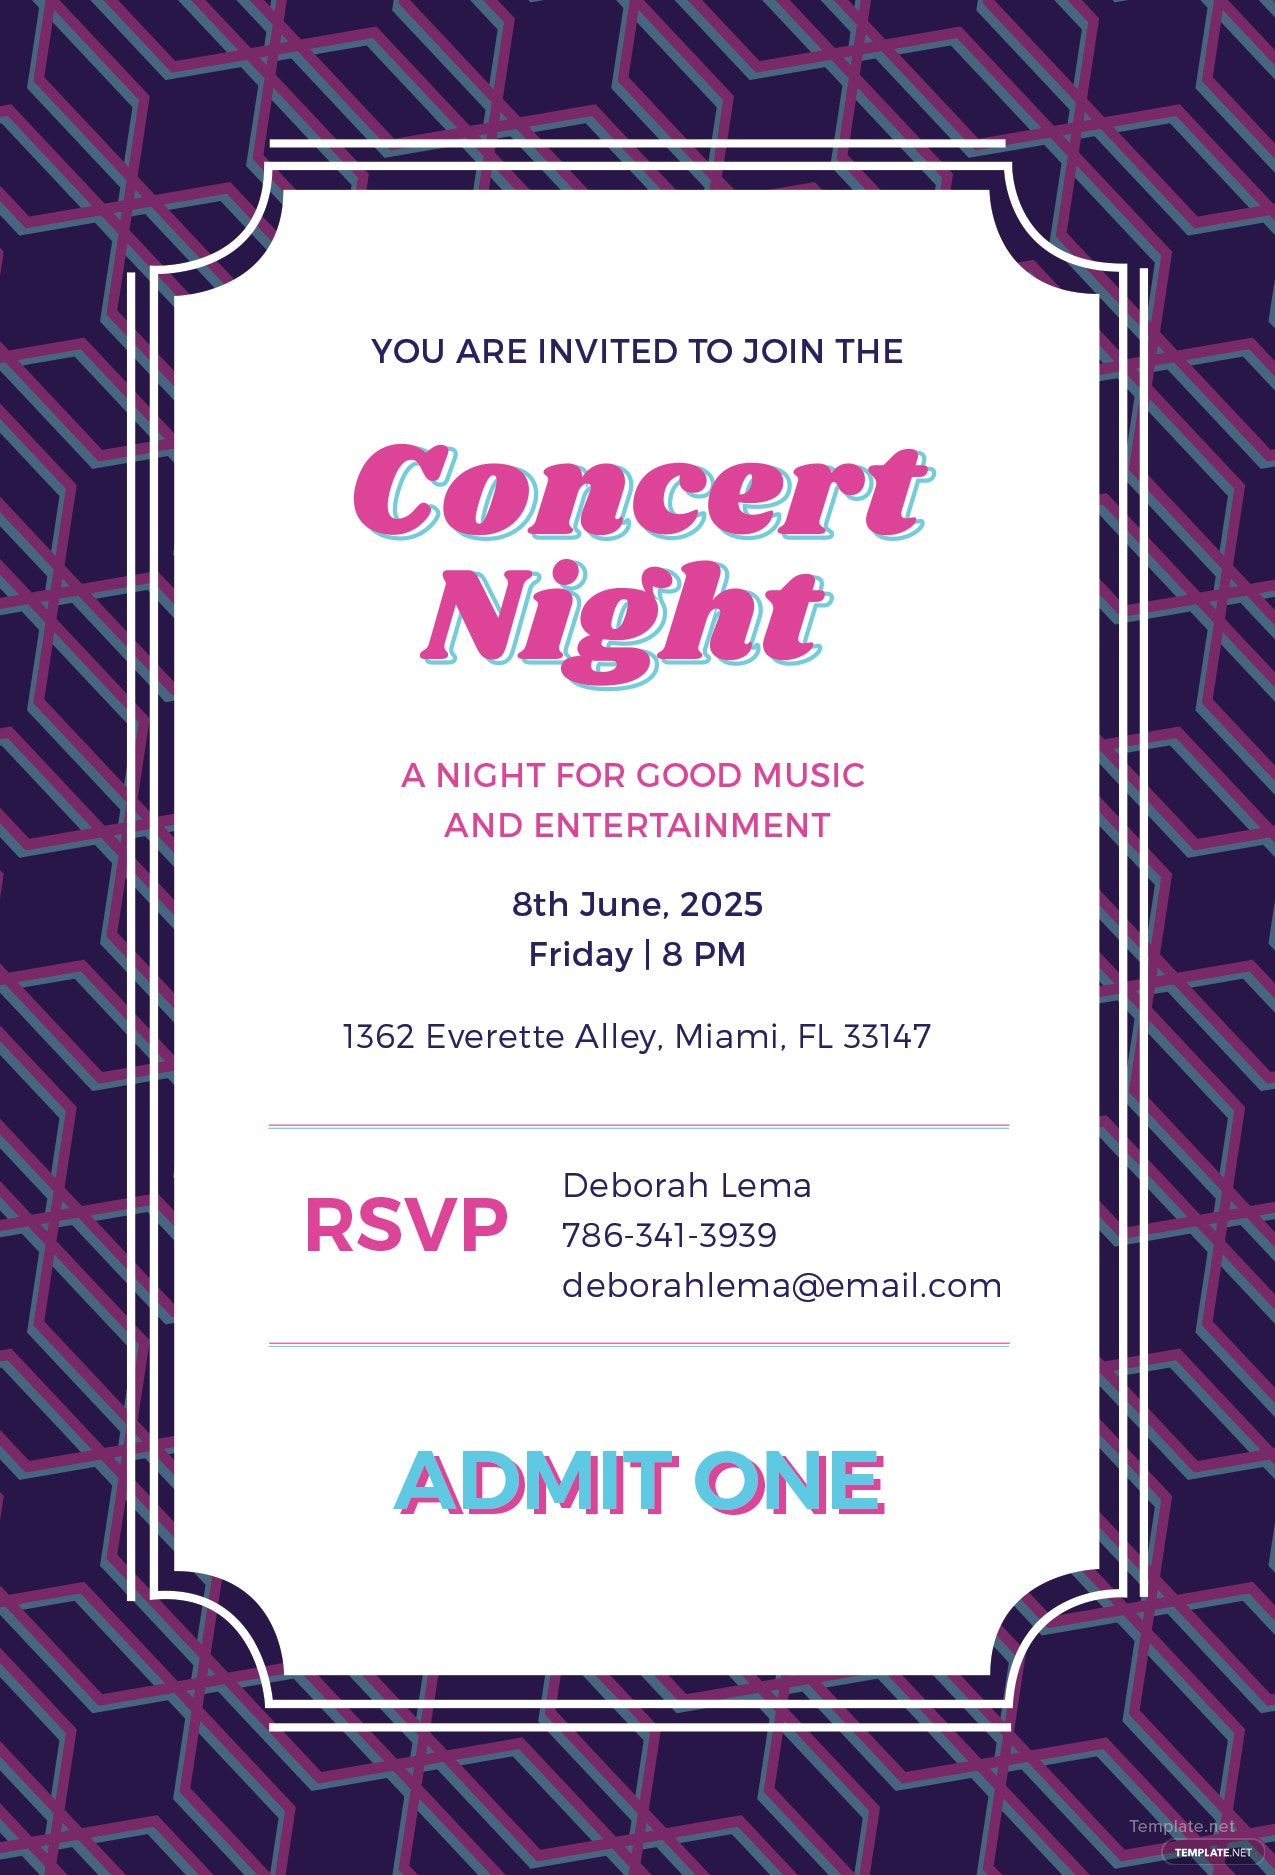 free concert ticket invitation template in adobe photoshop illustrator microsoft word. Black Bedroom Furniture Sets. Home Design Ideas